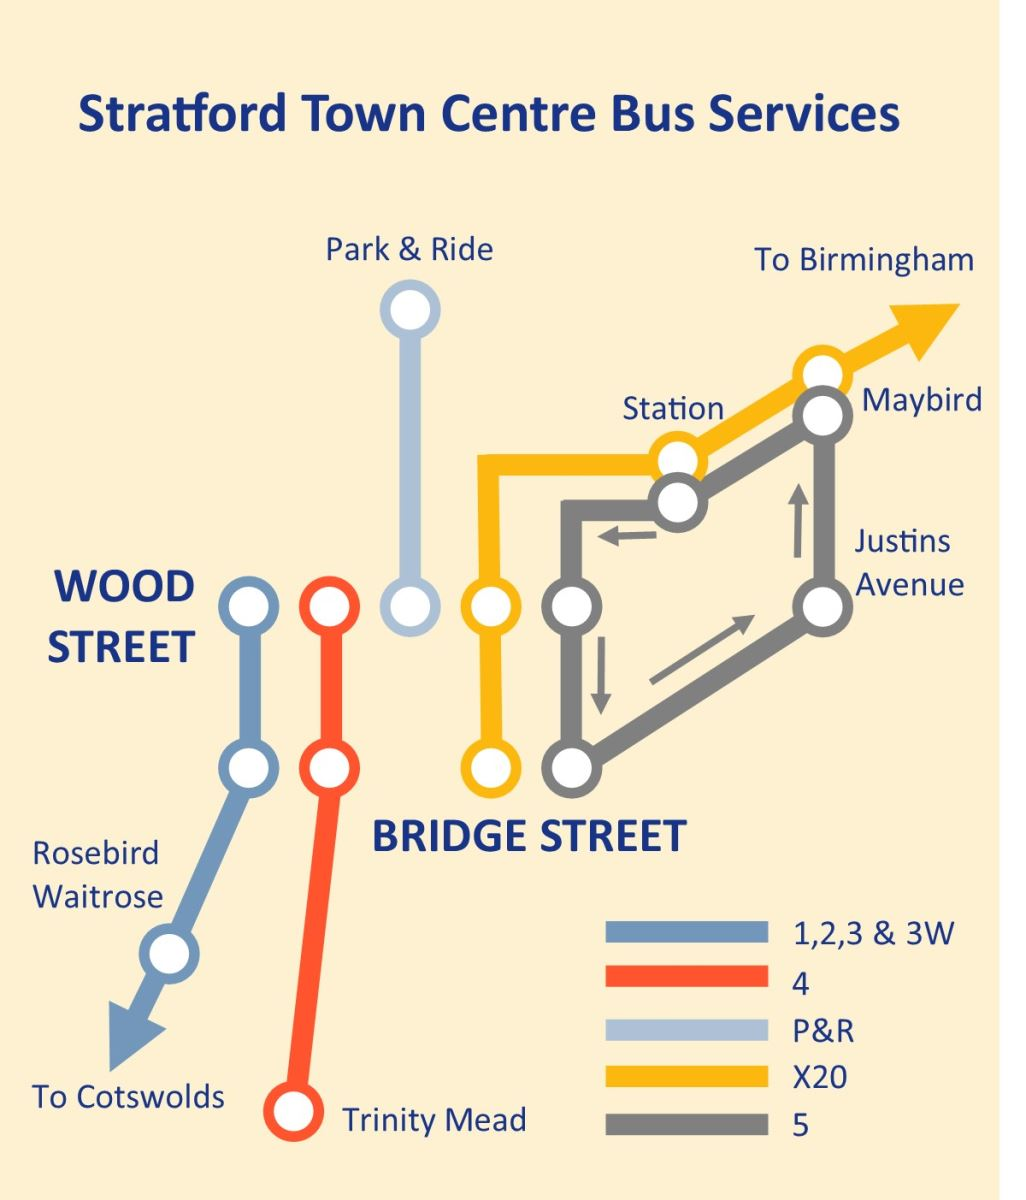 Stratford Town Centre bus service map